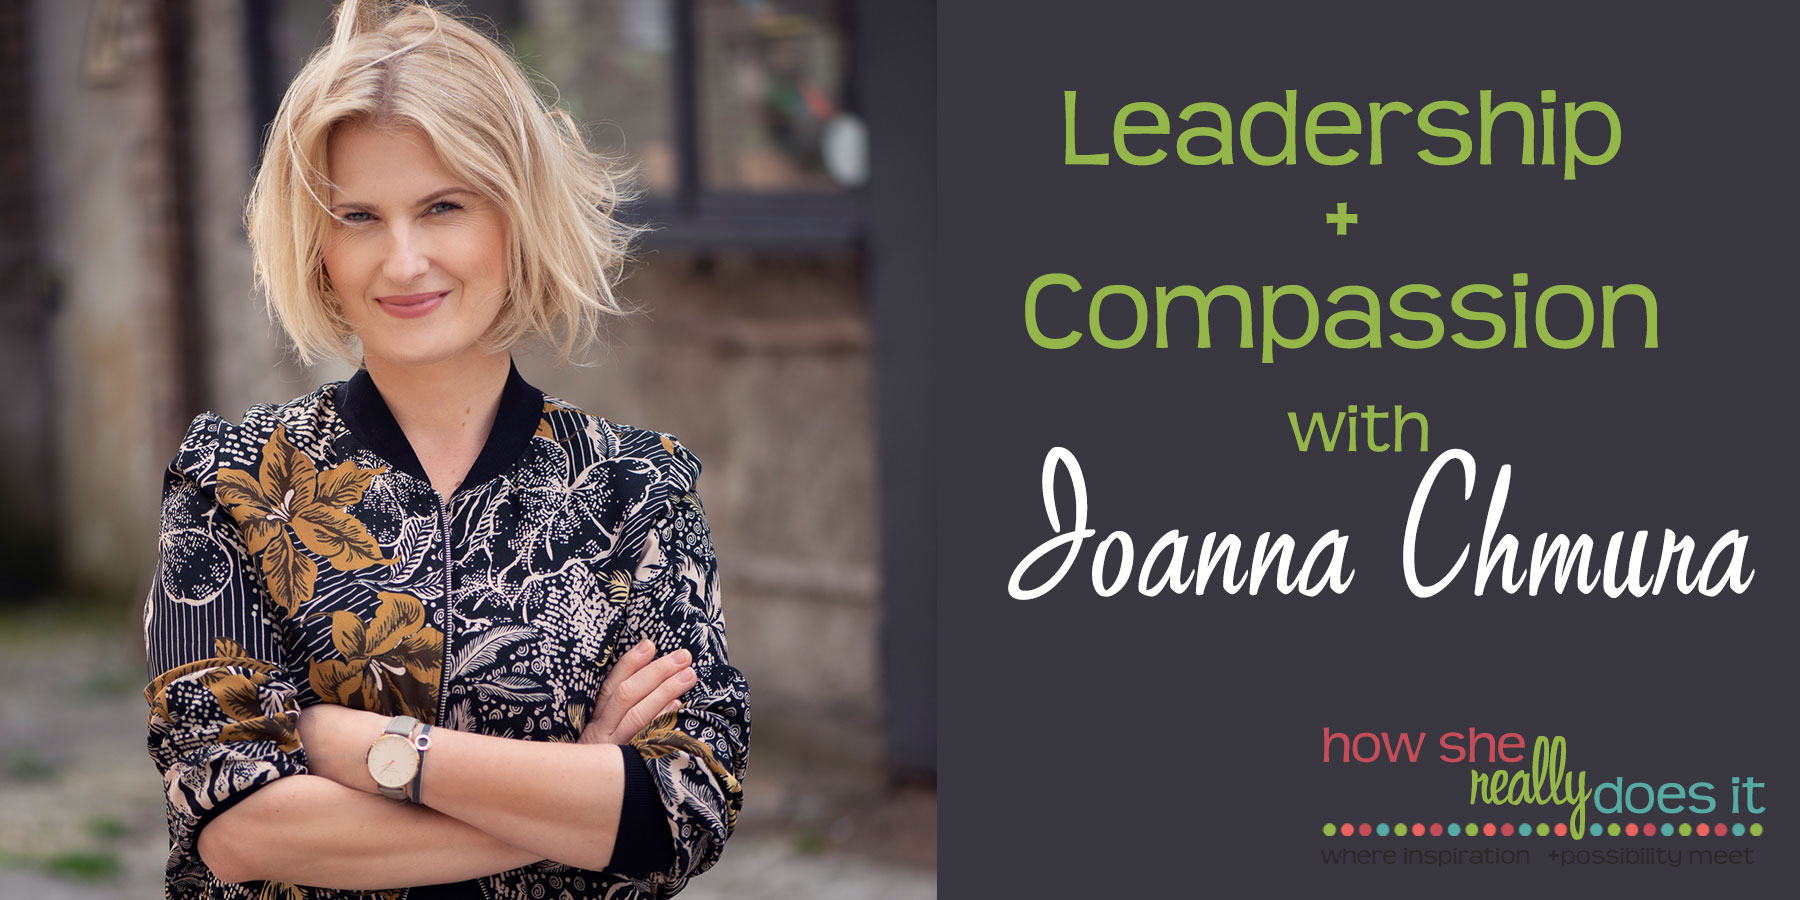 Leadership + Compassion with Joanna Chmura